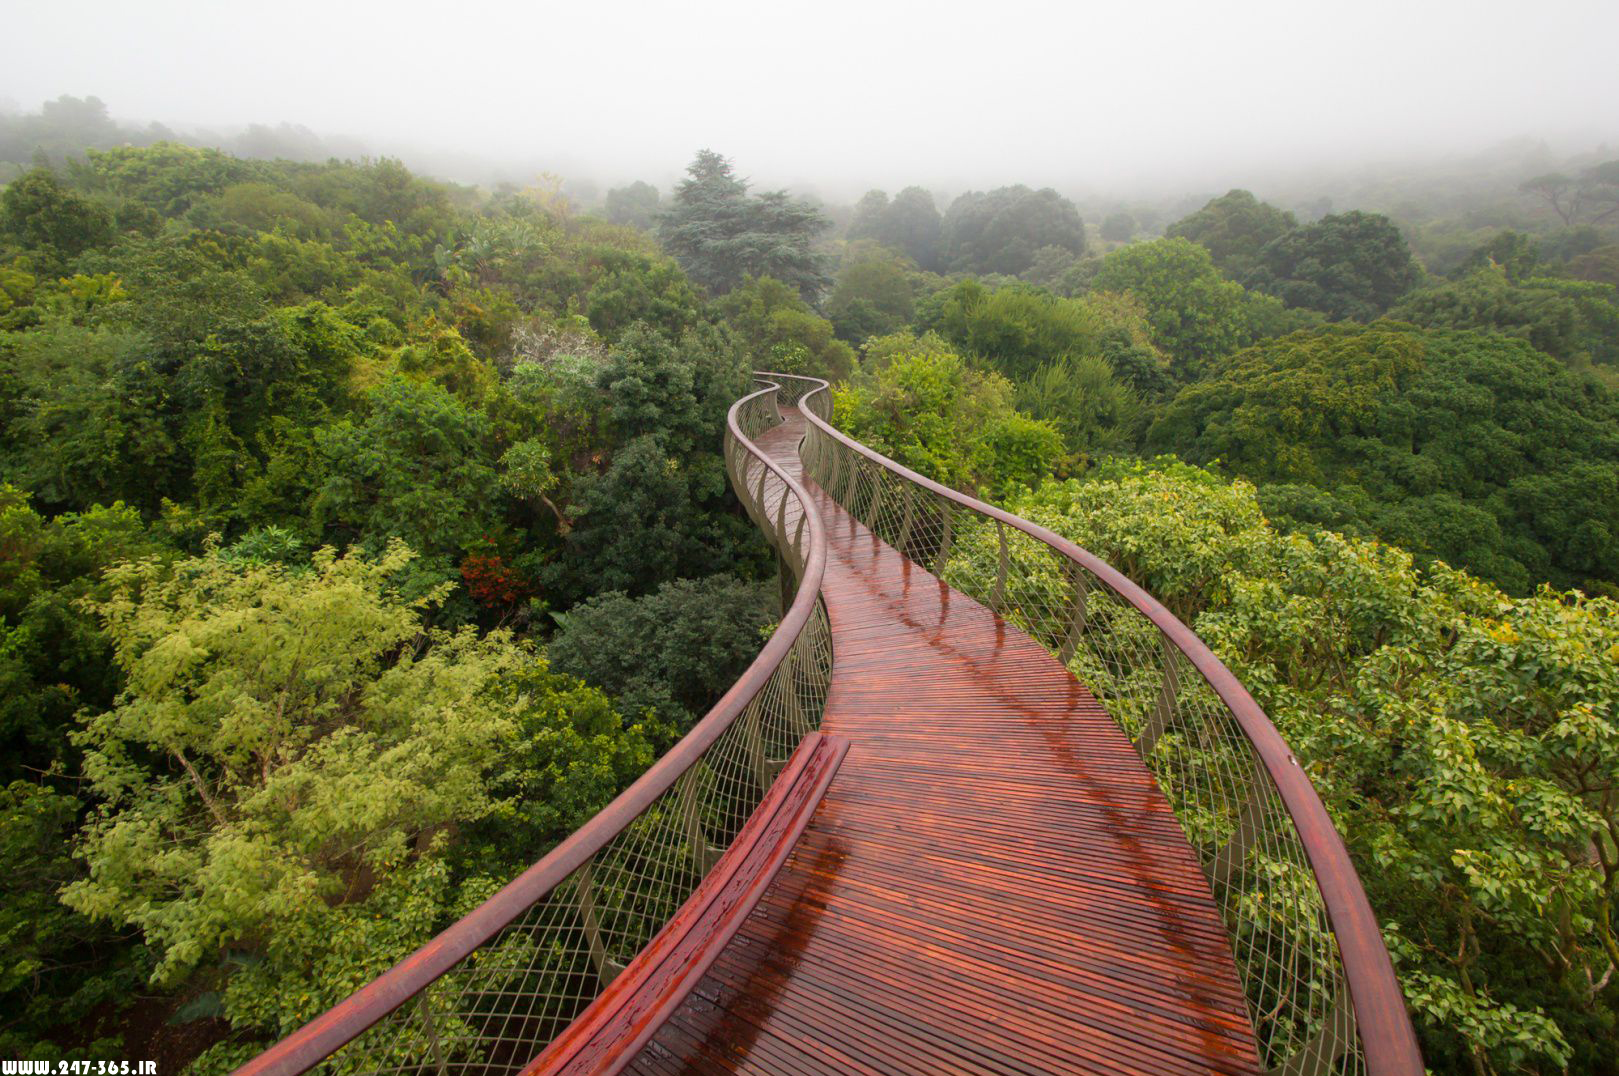 http://dl.247-365.ir/pic/tak_ax/Canopy_Walkway_In_Cape_Town.jpg